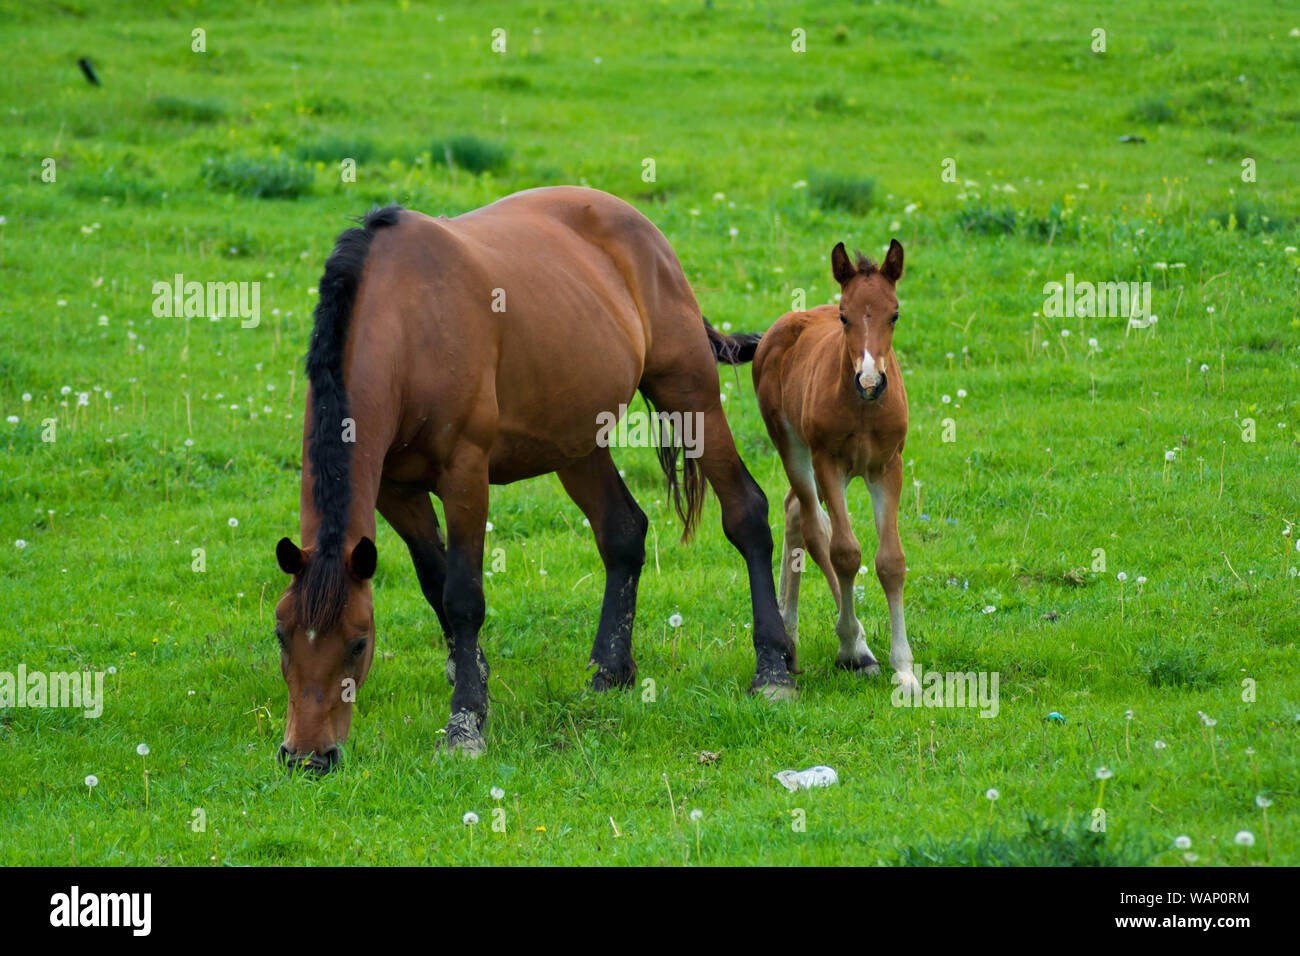 Baby Horse And His Mother Love Mother Son The Cute Baby Pony Confidently Turns To Its Mommy Horses Love Forever Stock Photo Alamy